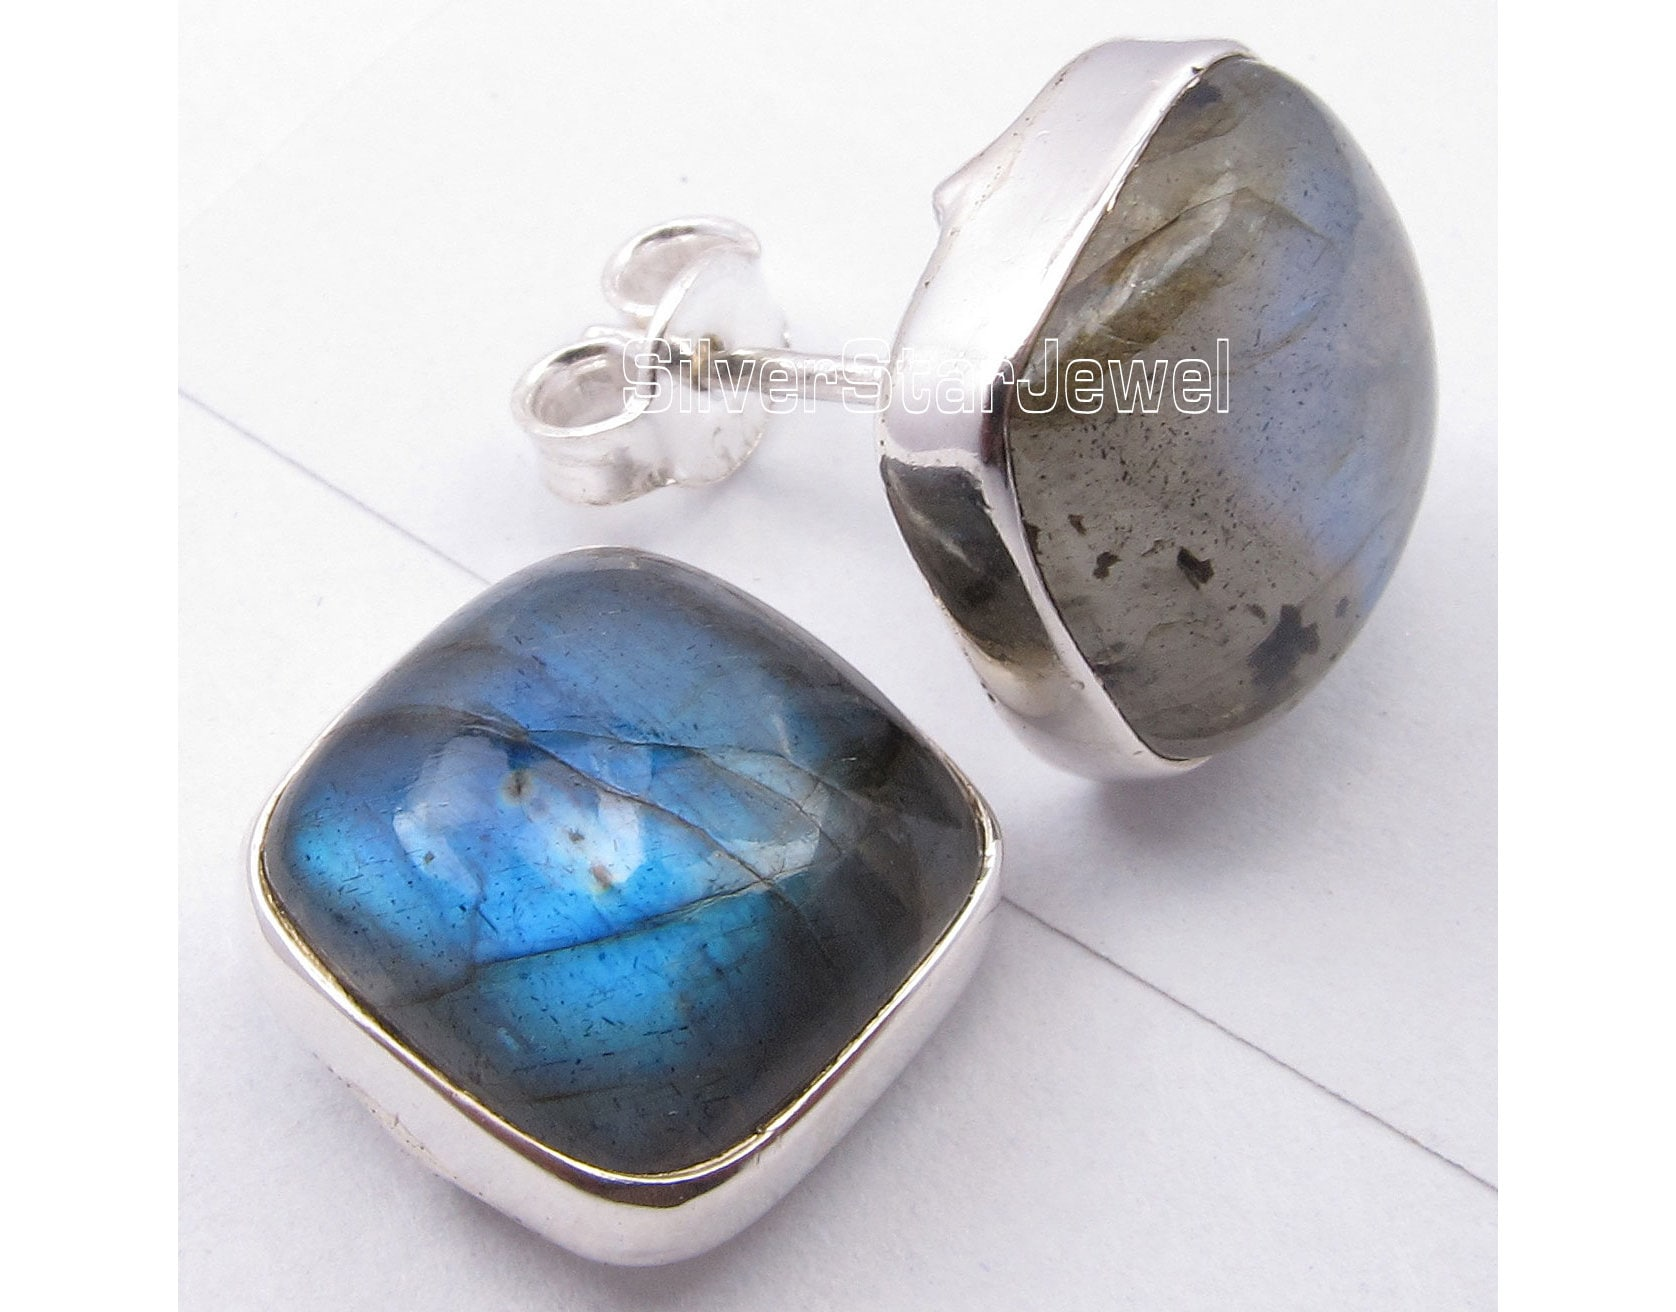 Brand New 925 Sterling Silver Beautiful Natural MULTICOLOR MULTISTONES Pendant 1.3 Gift For Friend Choose Your Color Battle of the Boyne